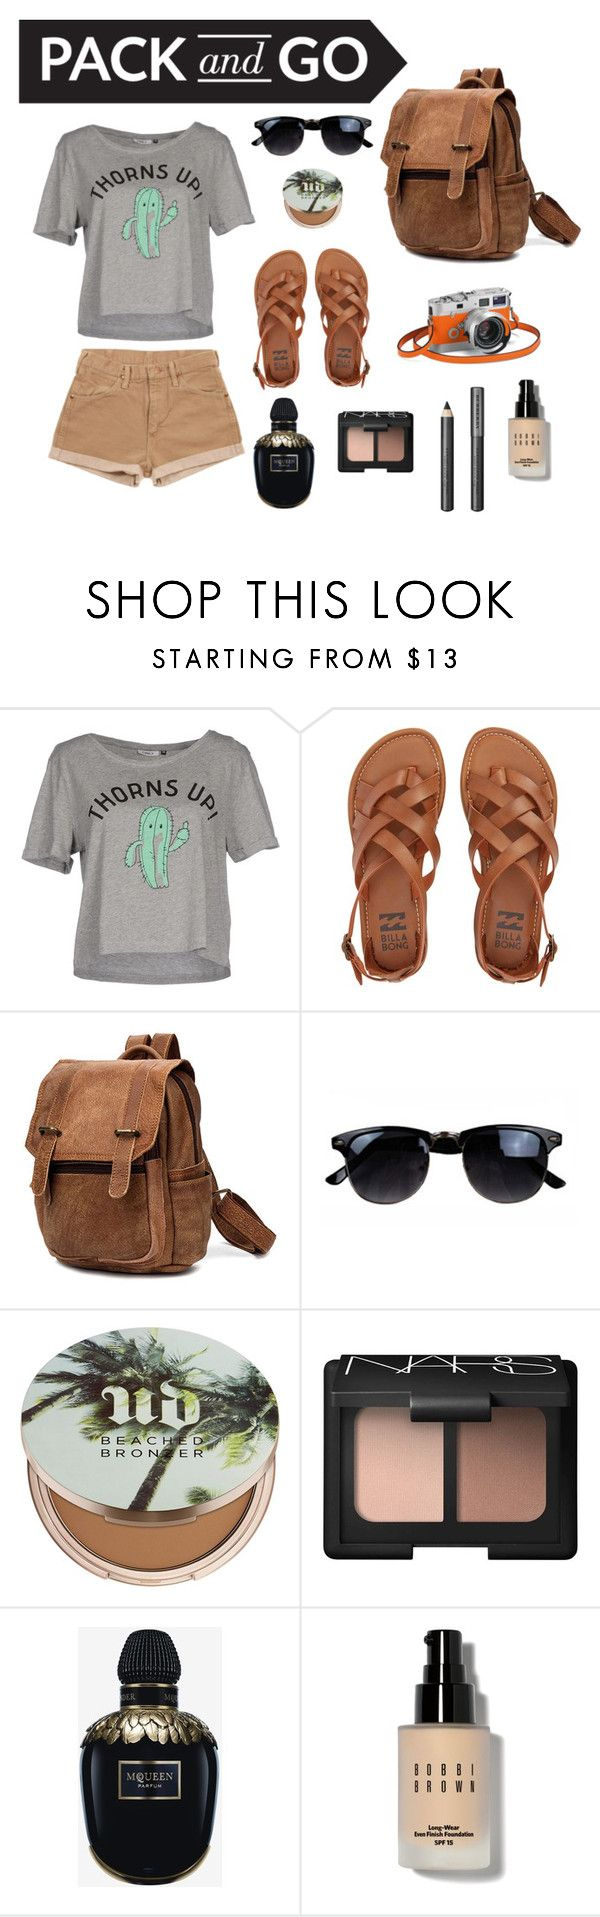 """""""#53 Mexico"""" by finrinel ❤ liked on Polyvore featuring ONLY, Wrangler, Billabong, Hermès, Urban Decay, NARS Cosmetics, Alexander McQueen, Bobbi Brown Cosmetics and Burberry"""